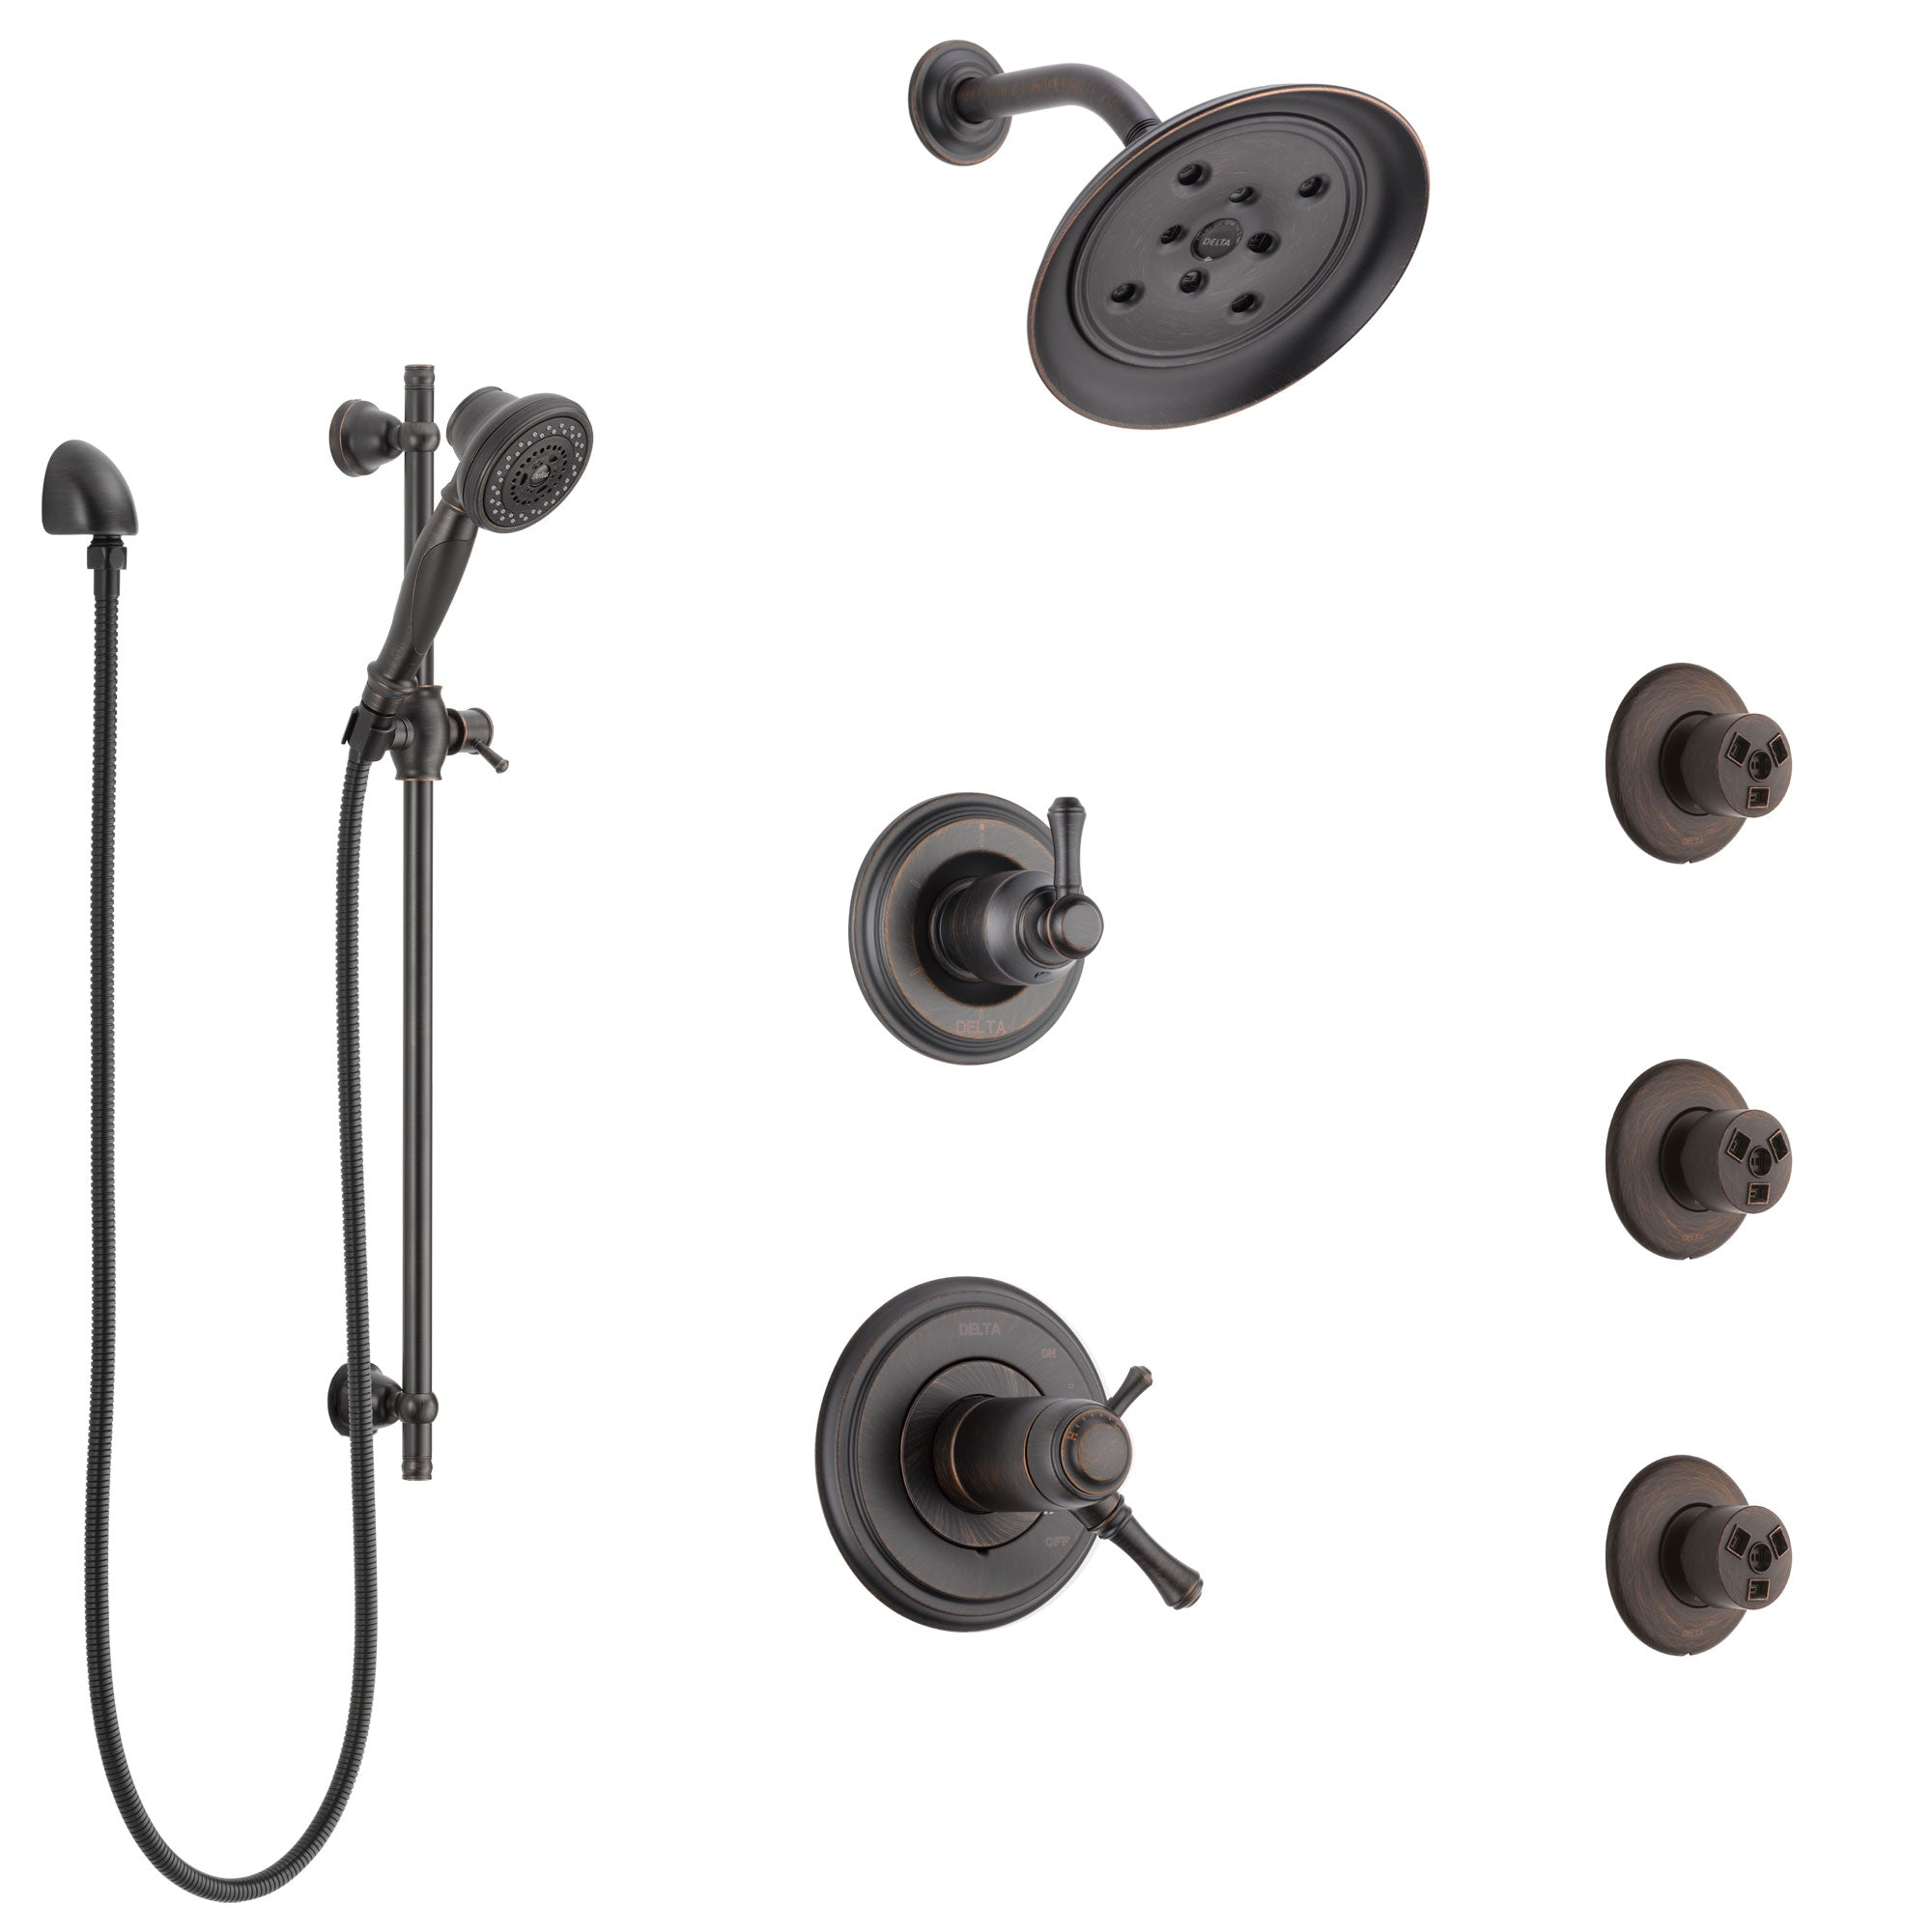 Delta Cassidy Venetian Bronze Shower System with Dual Thermostatic Control, 6-Setting Diverter, Showerhead, 3 Body Sprays, and Hand Shower SS17T971RB4